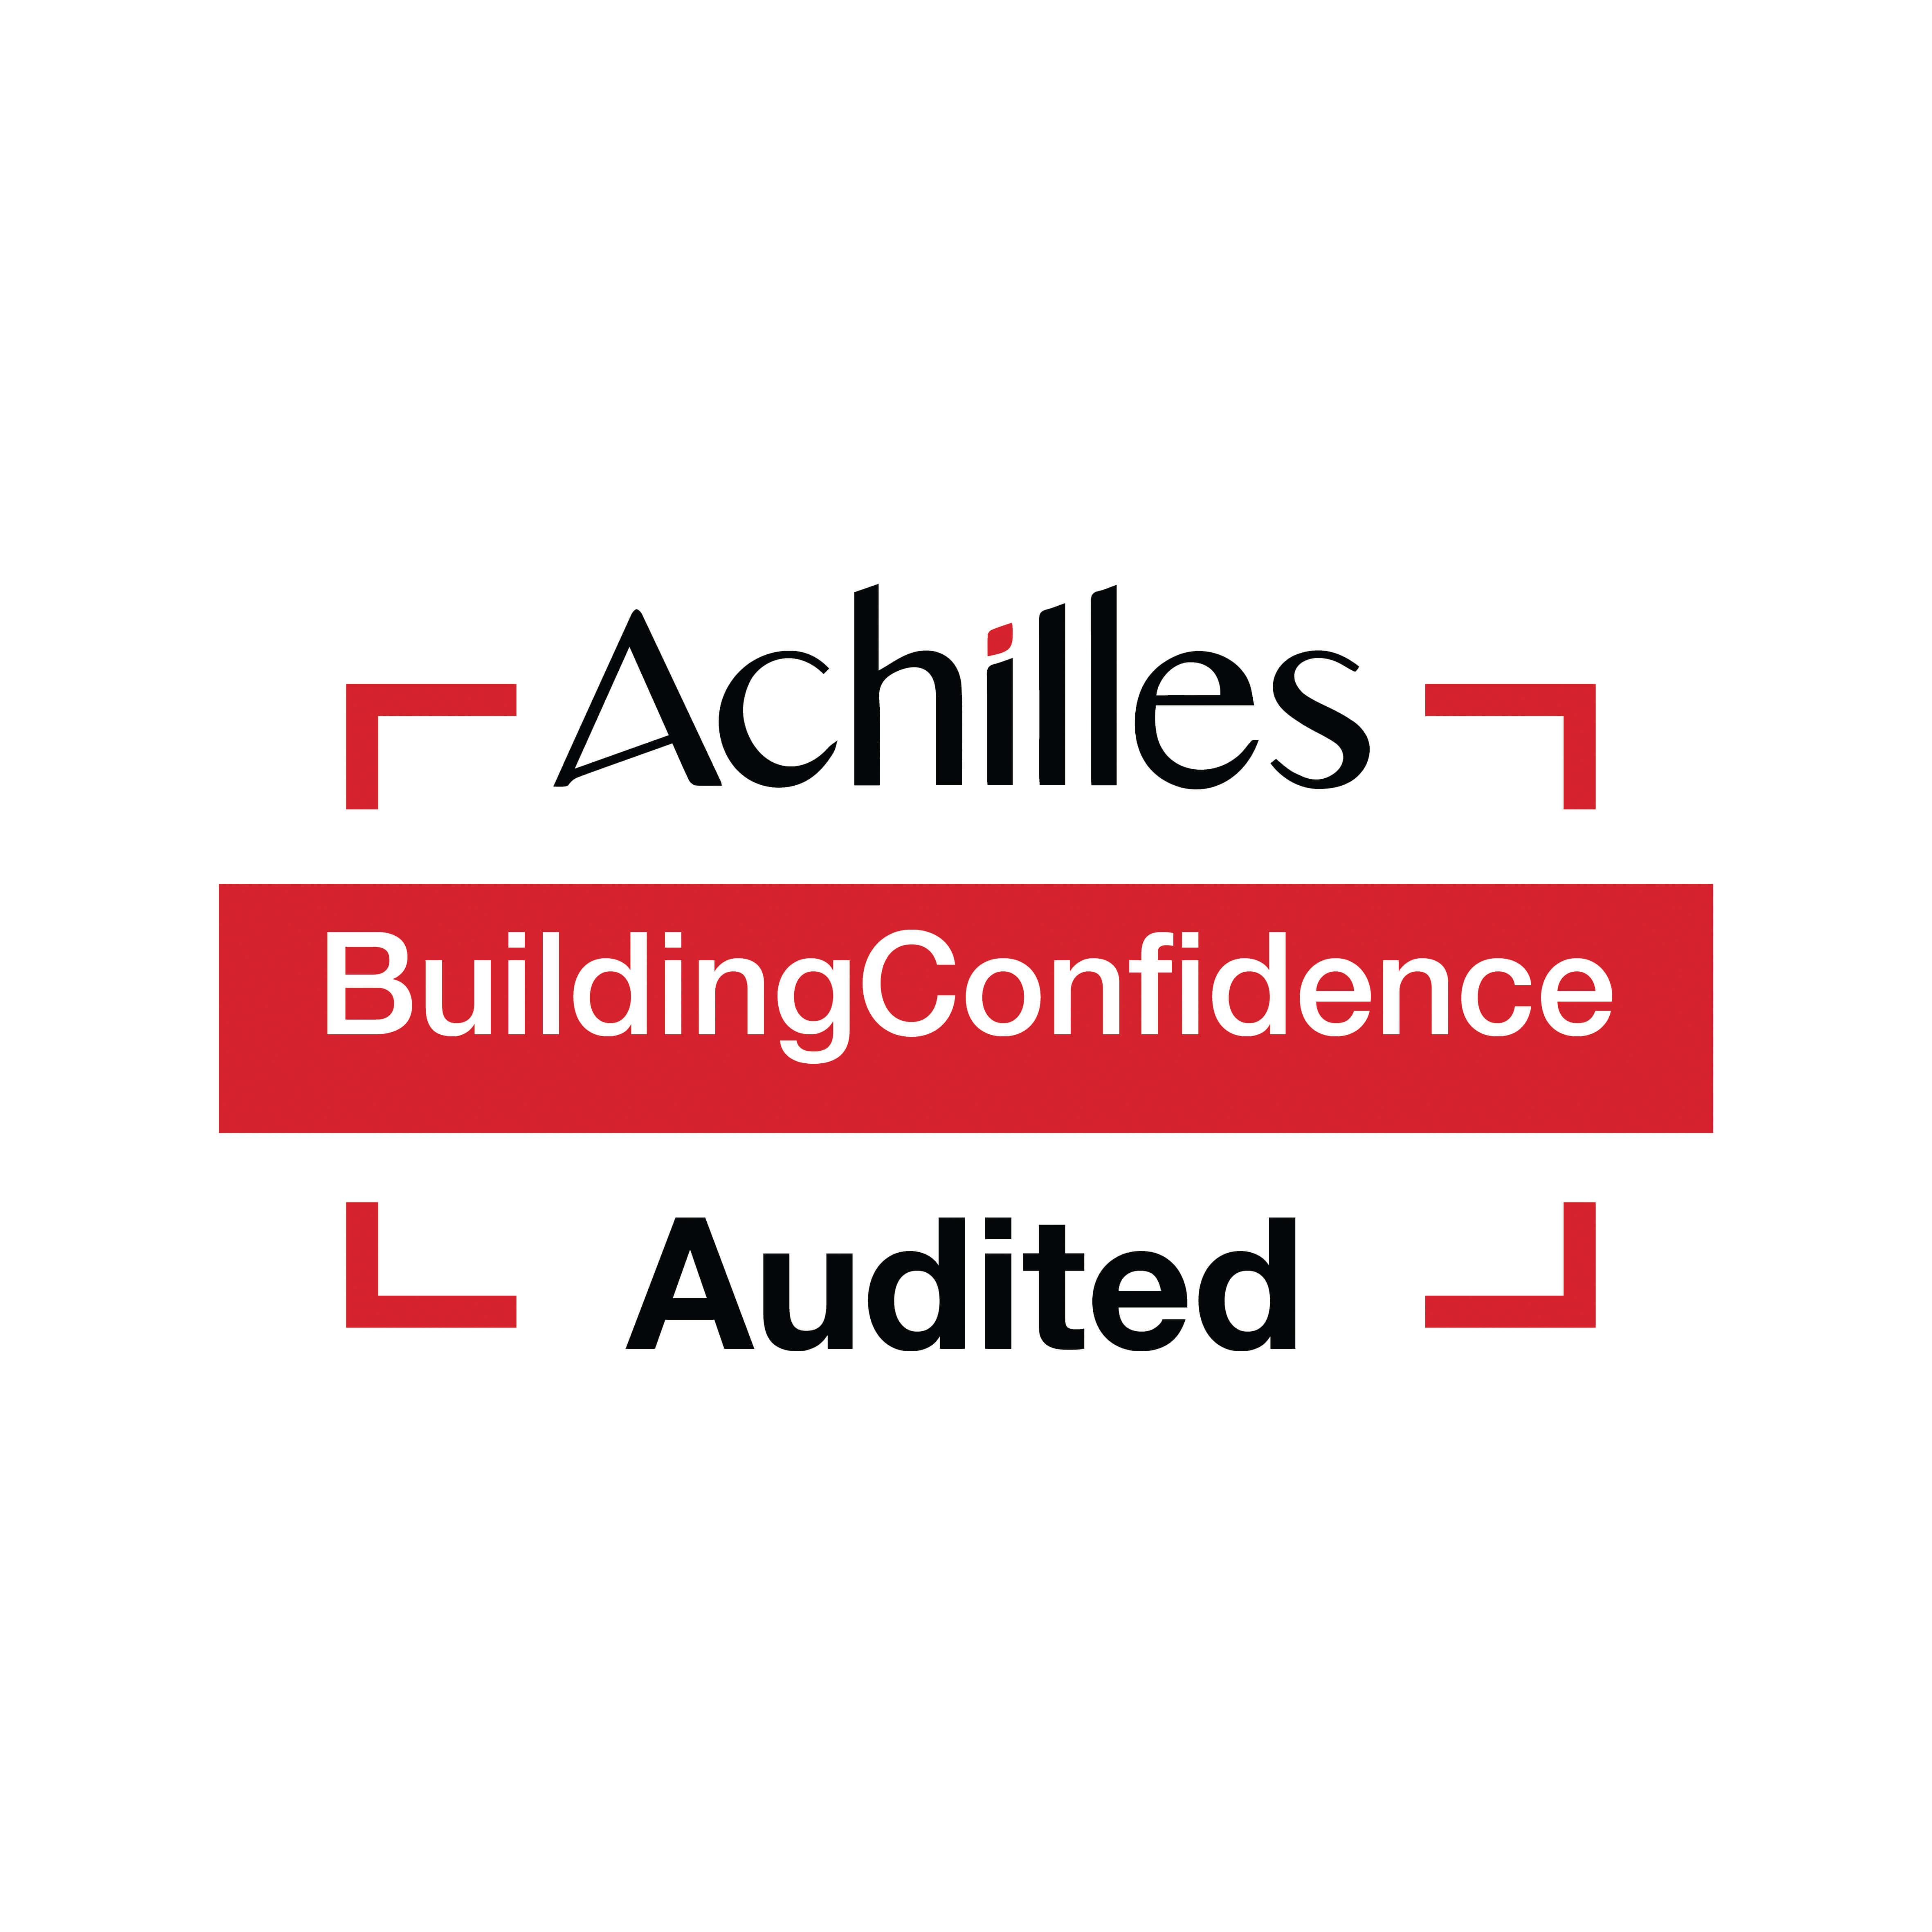 Achilles Building Confidence Audited Logo.jpg